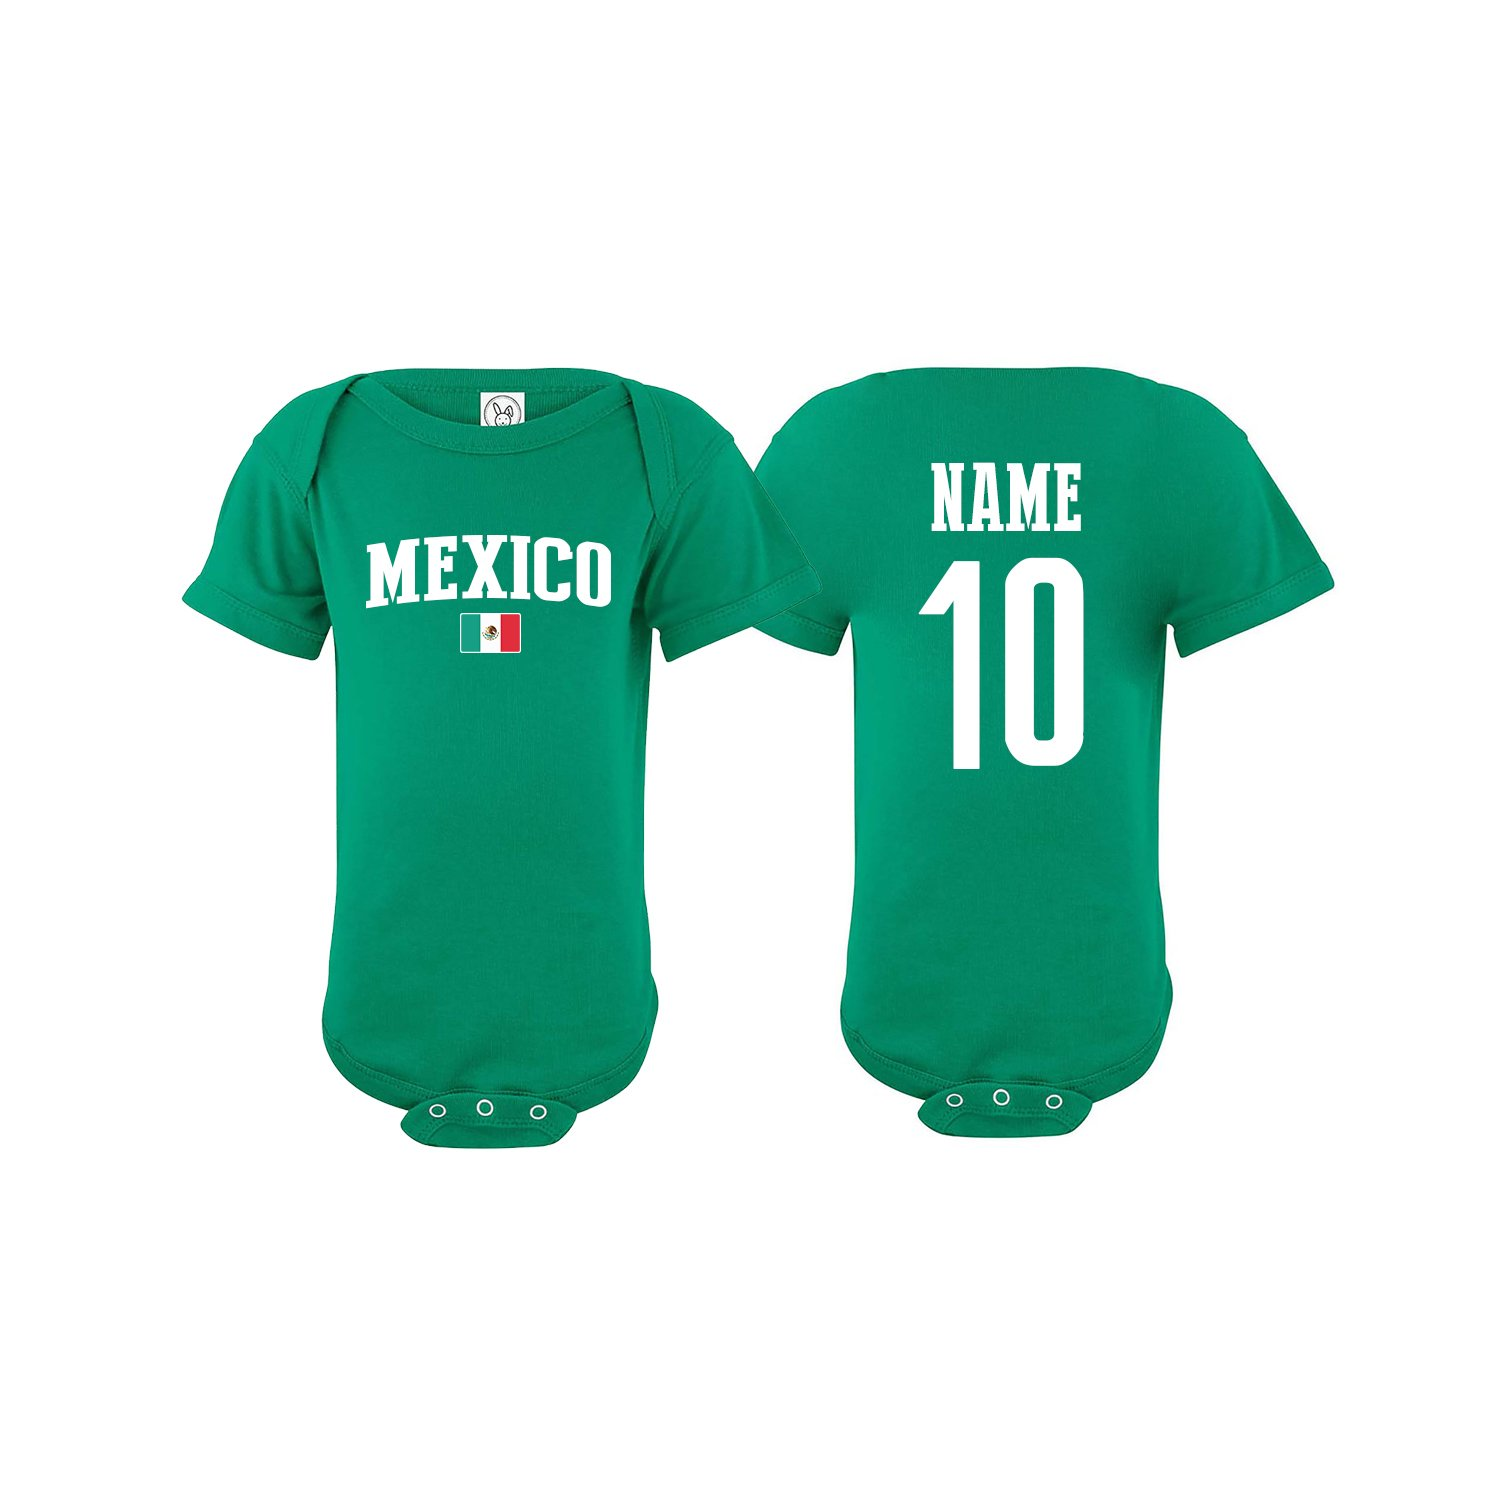 03513a081e4 Our funny baby clothes make great gifts for baby showers, new arrivals, baby  birthdays, and holidays. We can customize any order! Many of our creations  are ...